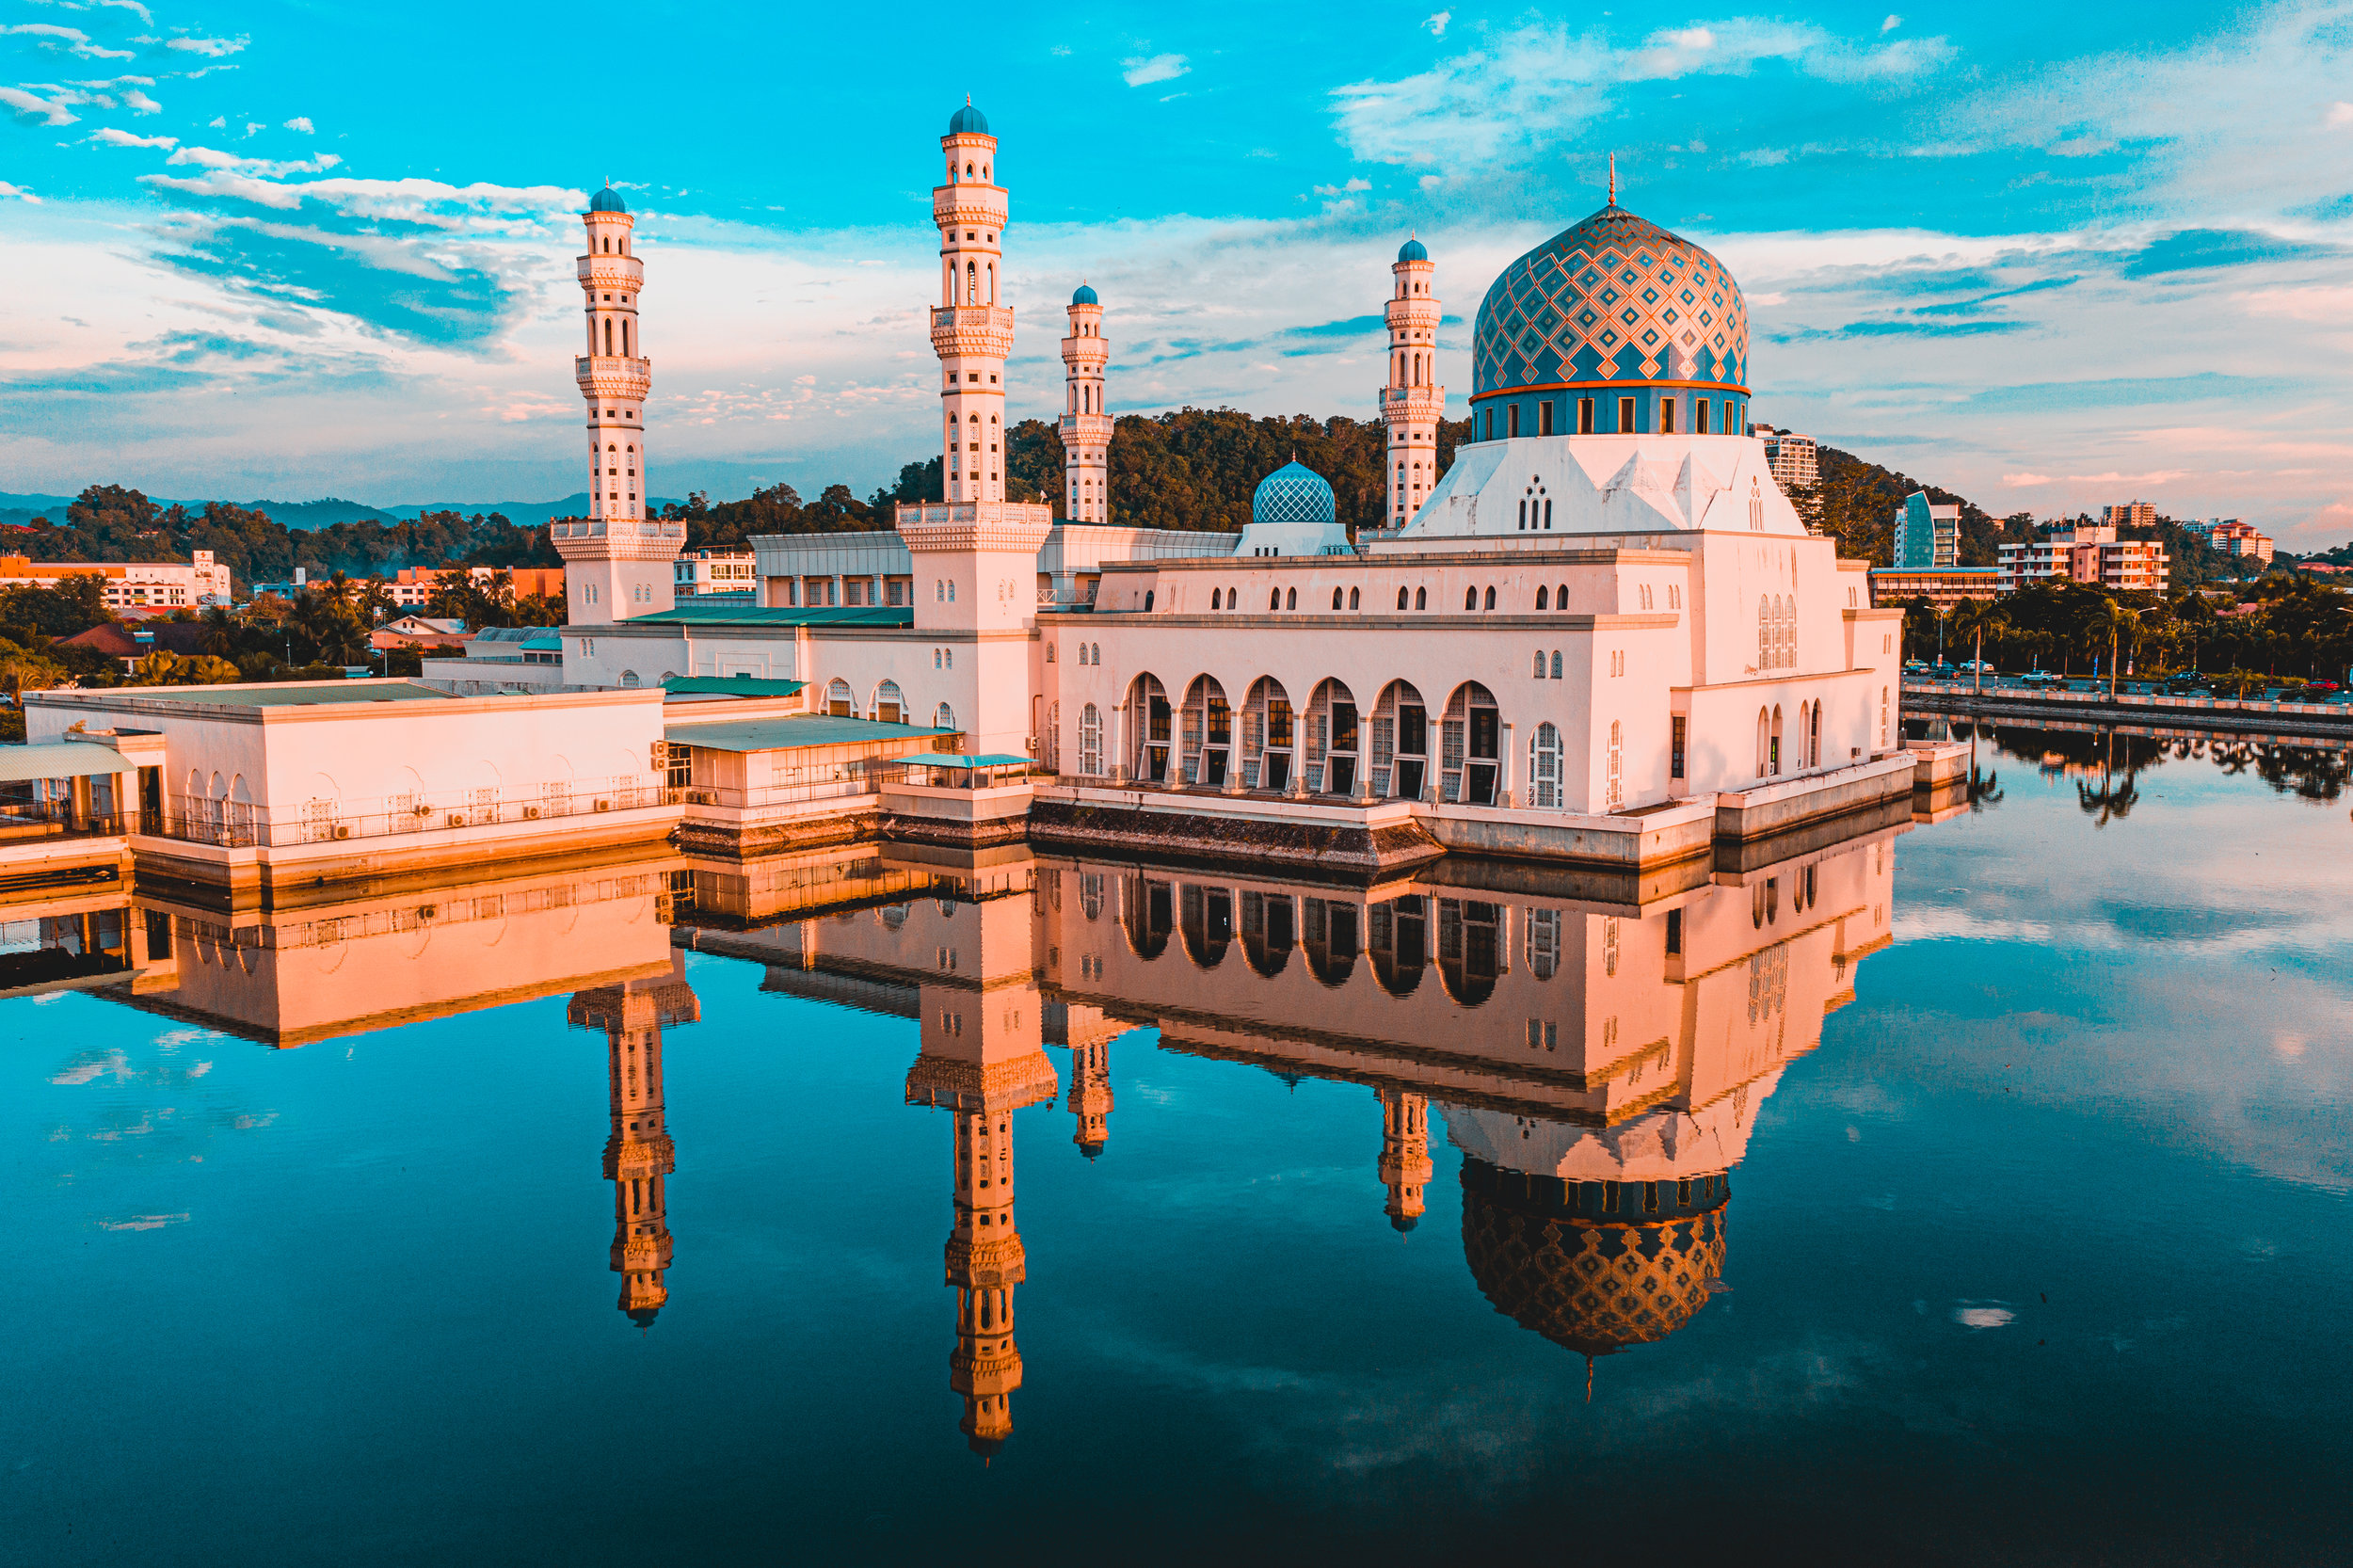 The Kota Kinabalu City Mosque, whose dome is inspired by the Prophet's Mosque in Medina, sits in the middle of a man-made lagoon. Shot on the DJI Mavic 2 Pro. Joshua Karthik.